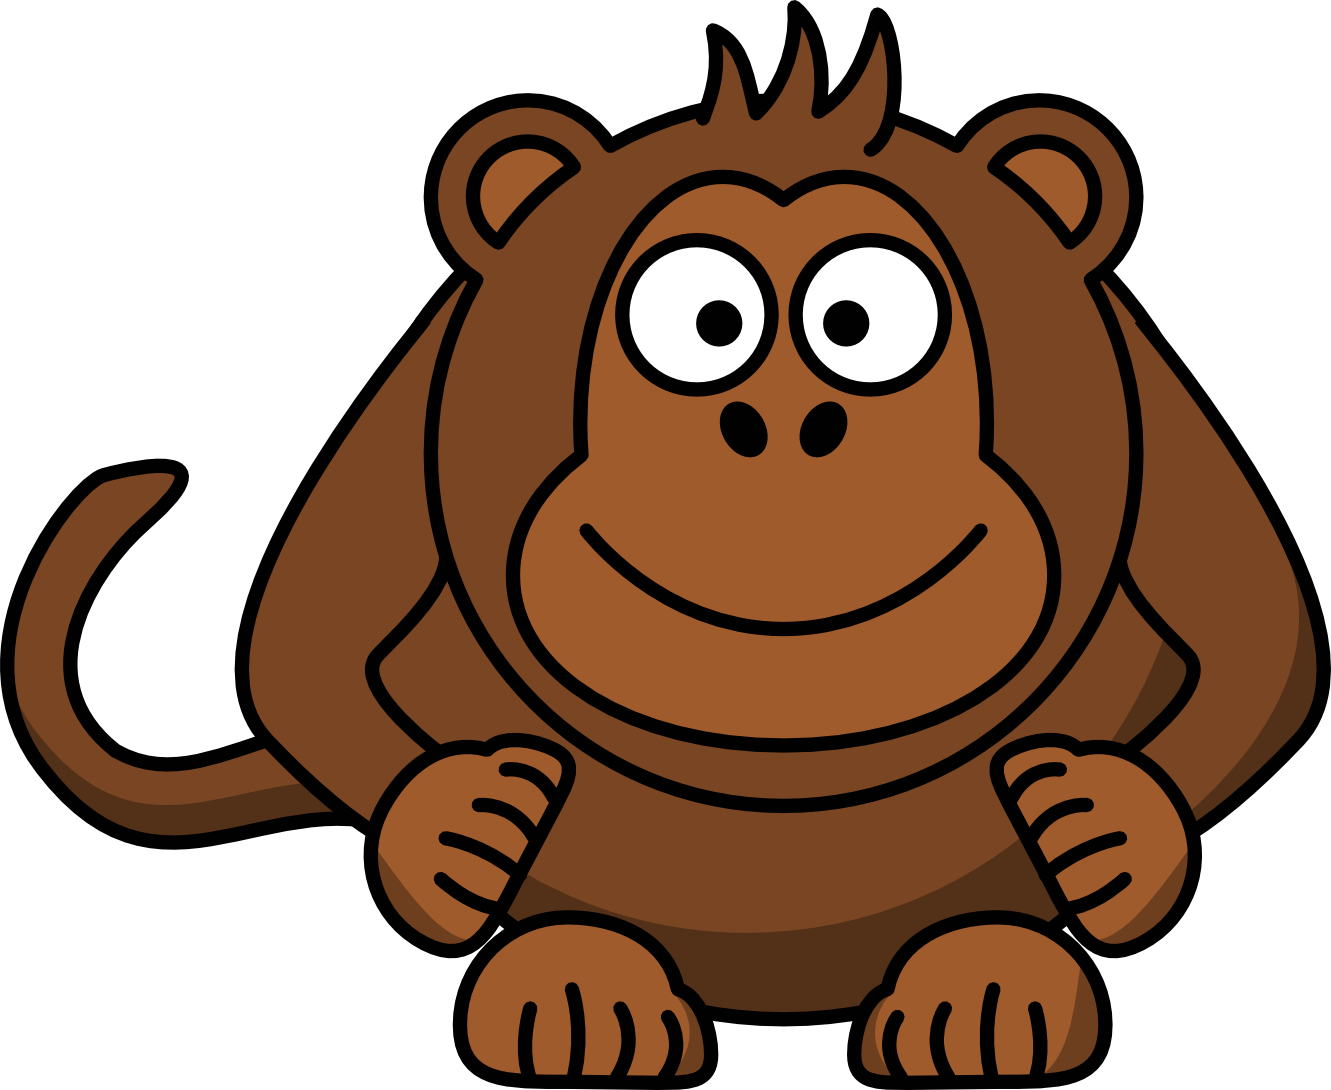 Monkey with a crown clipart clip art free download Girly Monkey Clip Art | Clipart Panda - Free Clipart Images clip art free download